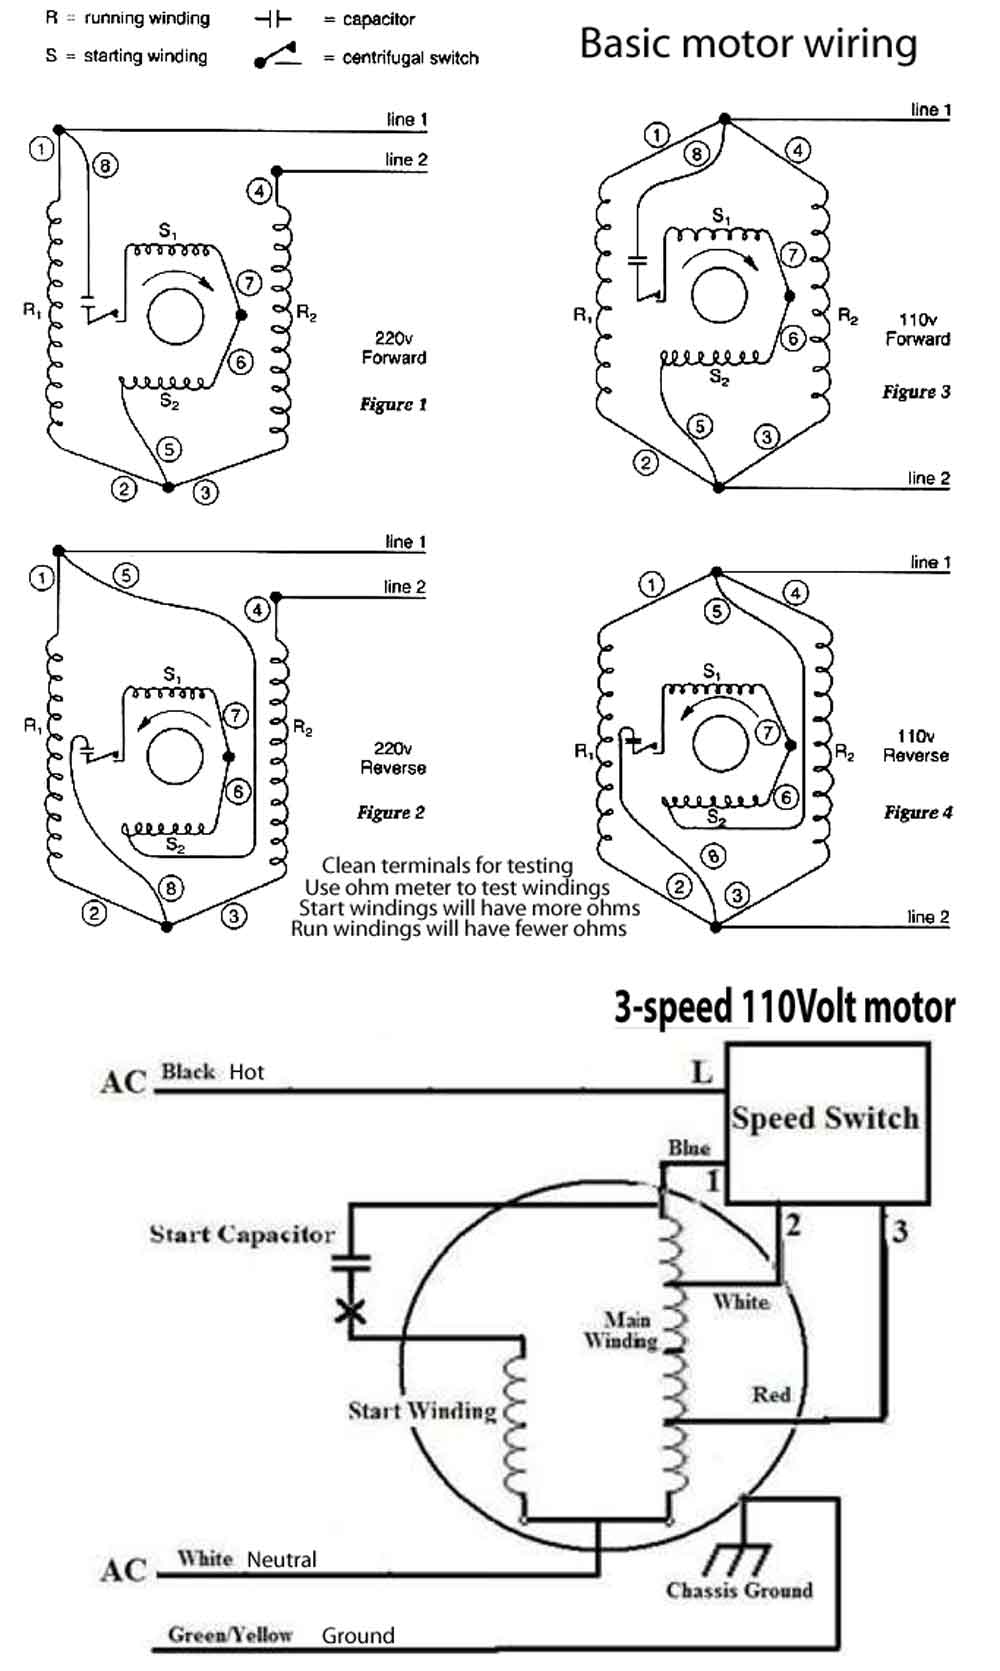 Motor wiring 500 pedestal fan wiring diagram cooling fan circuit diagram \u2022 wiring westinghouse wiring diagram at eliteediting.co